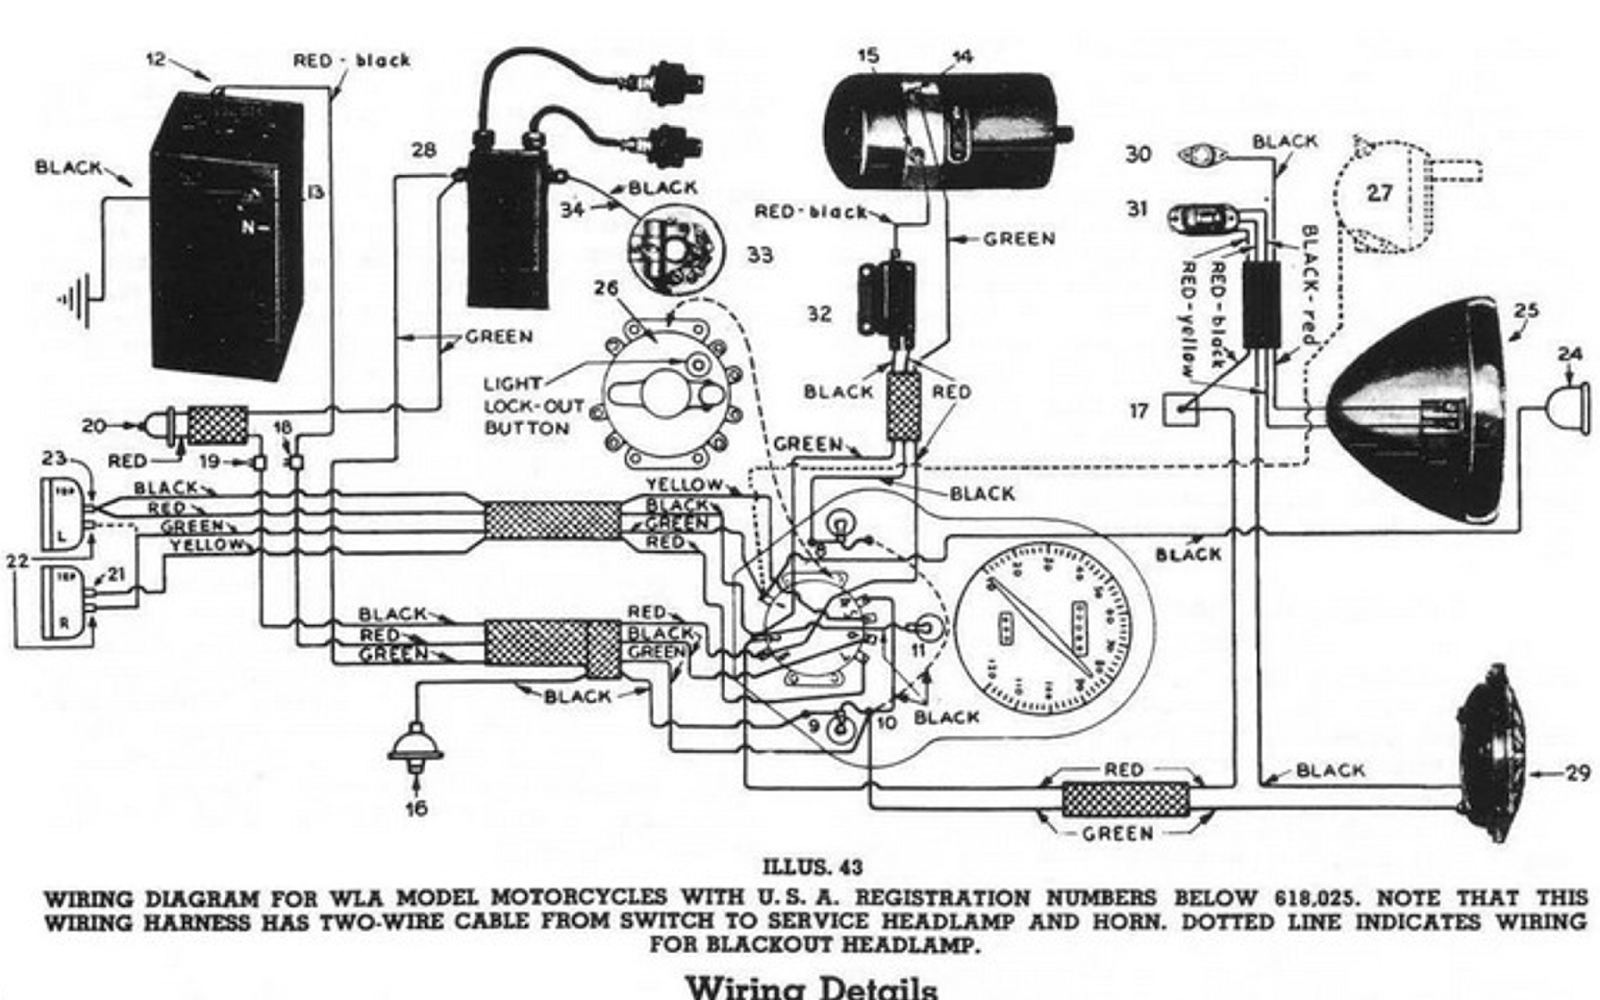 harley davidson wiring diagrams and schematics vauxhall vectra c radio diagram